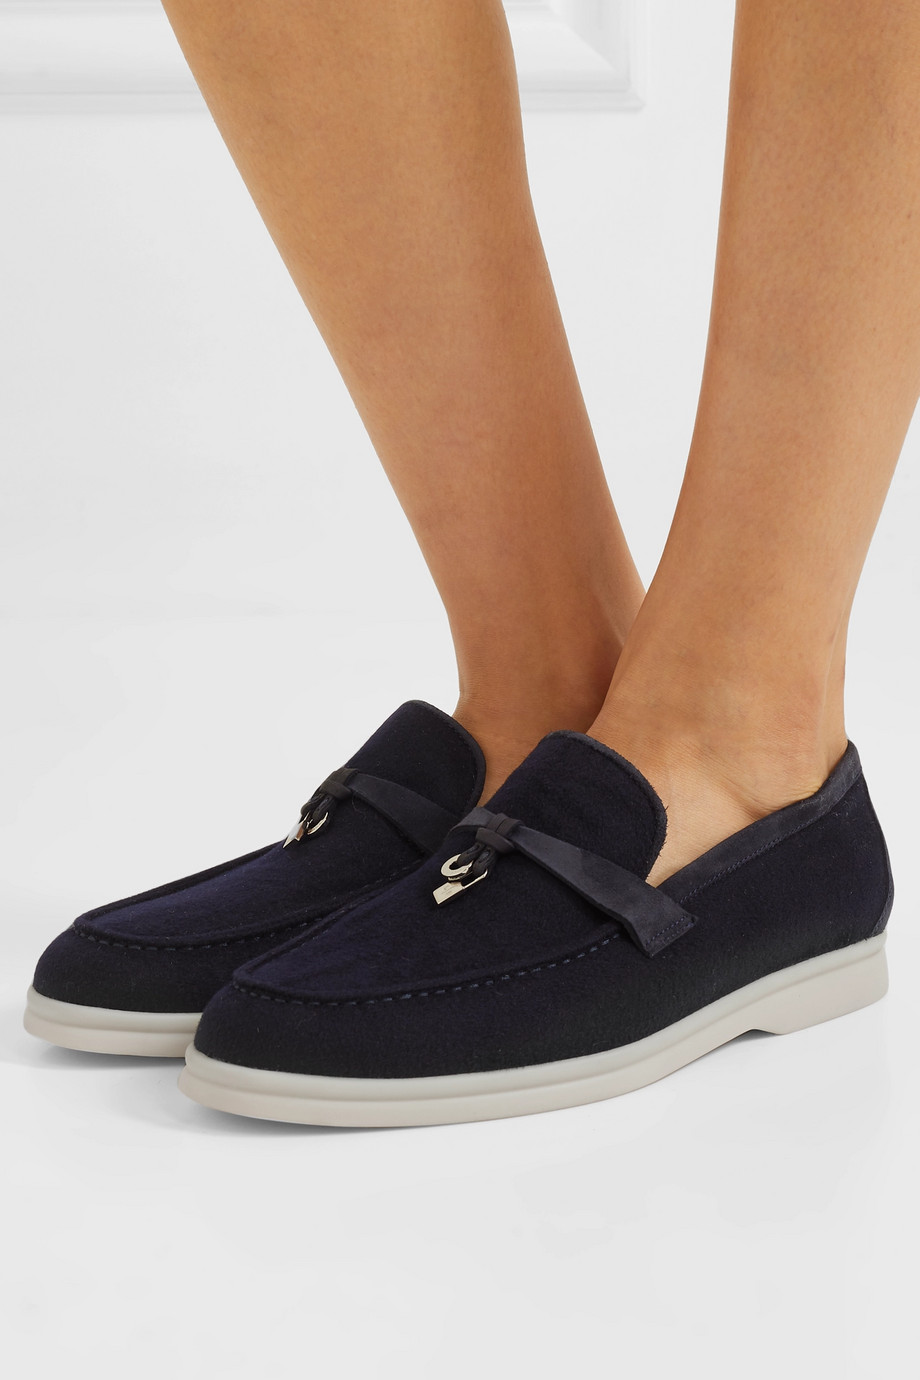 Loro Piana Summer Charms suede-trimmed cashmere loafers